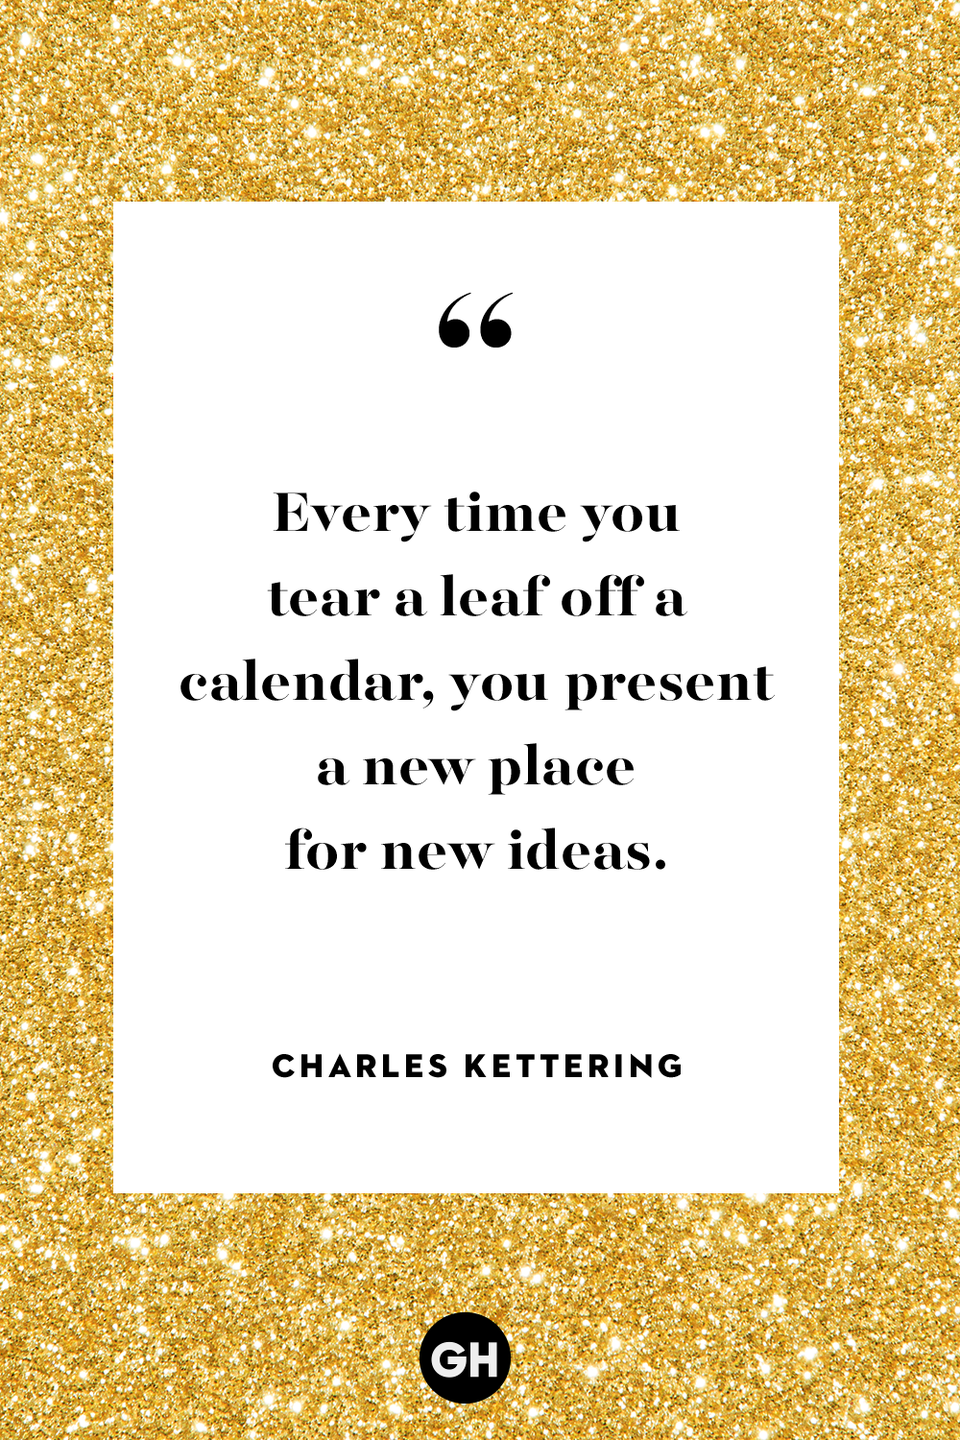 <p>Every time you tear a leaf off a calendar, you present a new place for new ideas.</p>